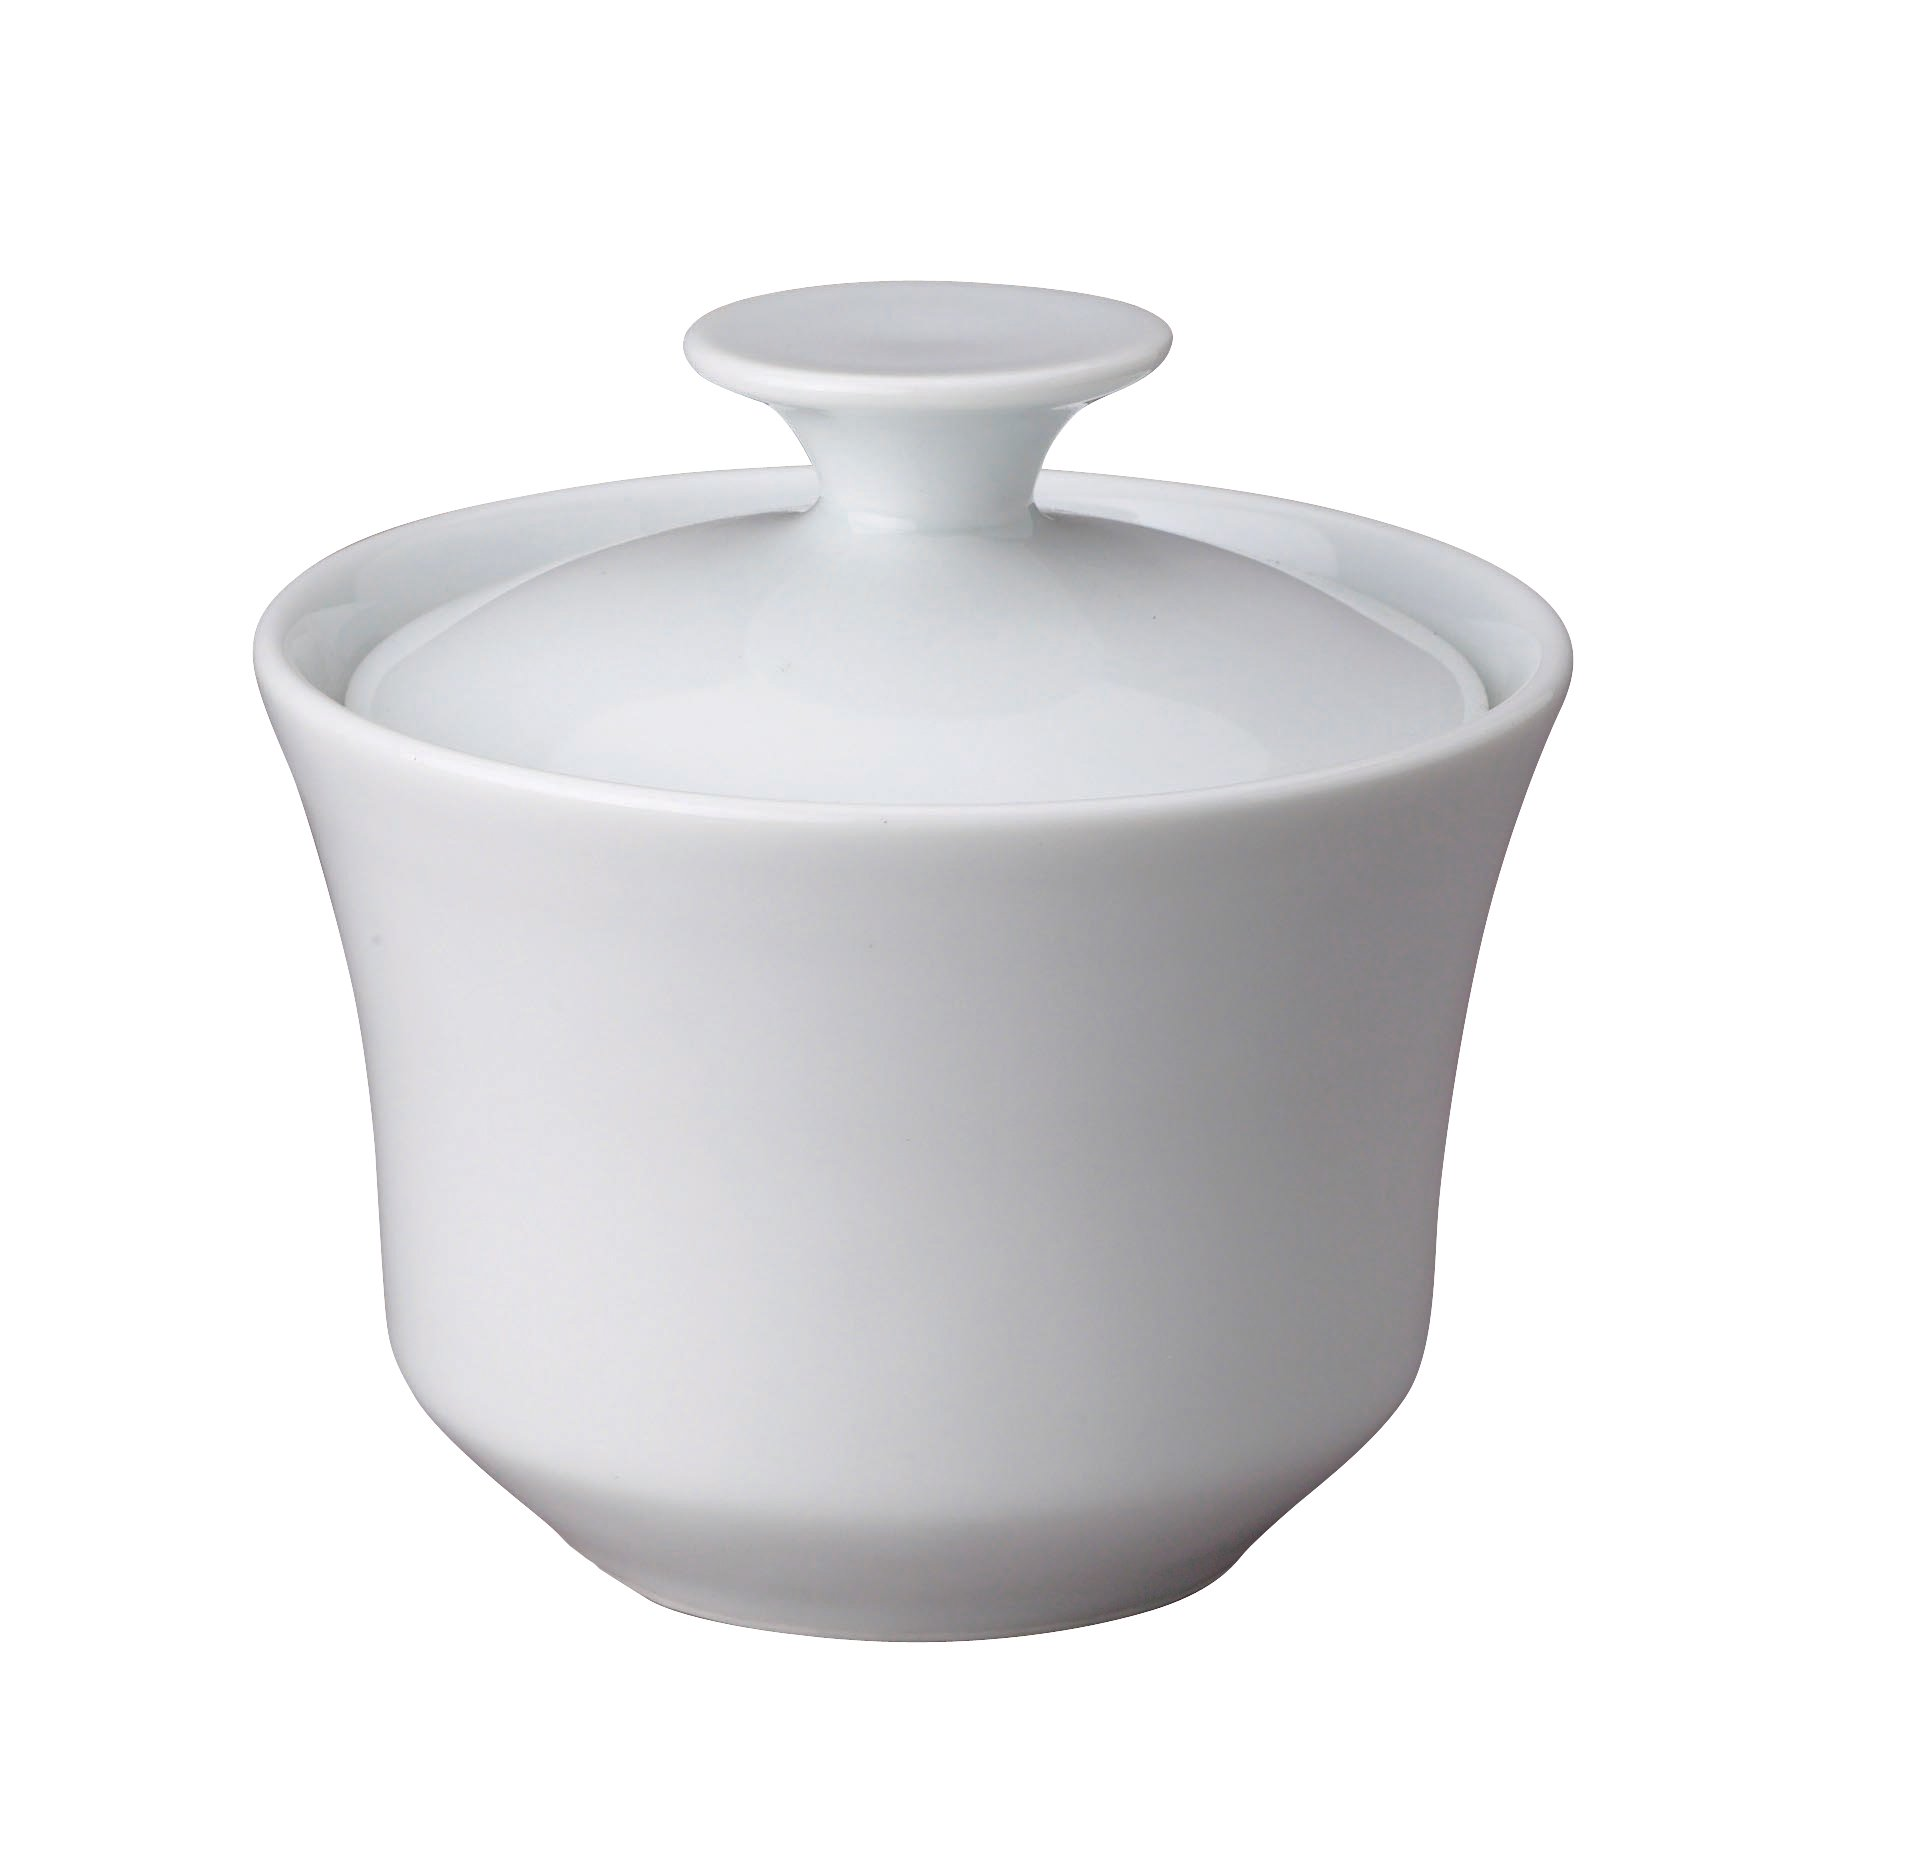 HIC Sugar Bowl with Lid for Coffee and Tea, Fine White Porcelain, 9-Ounces